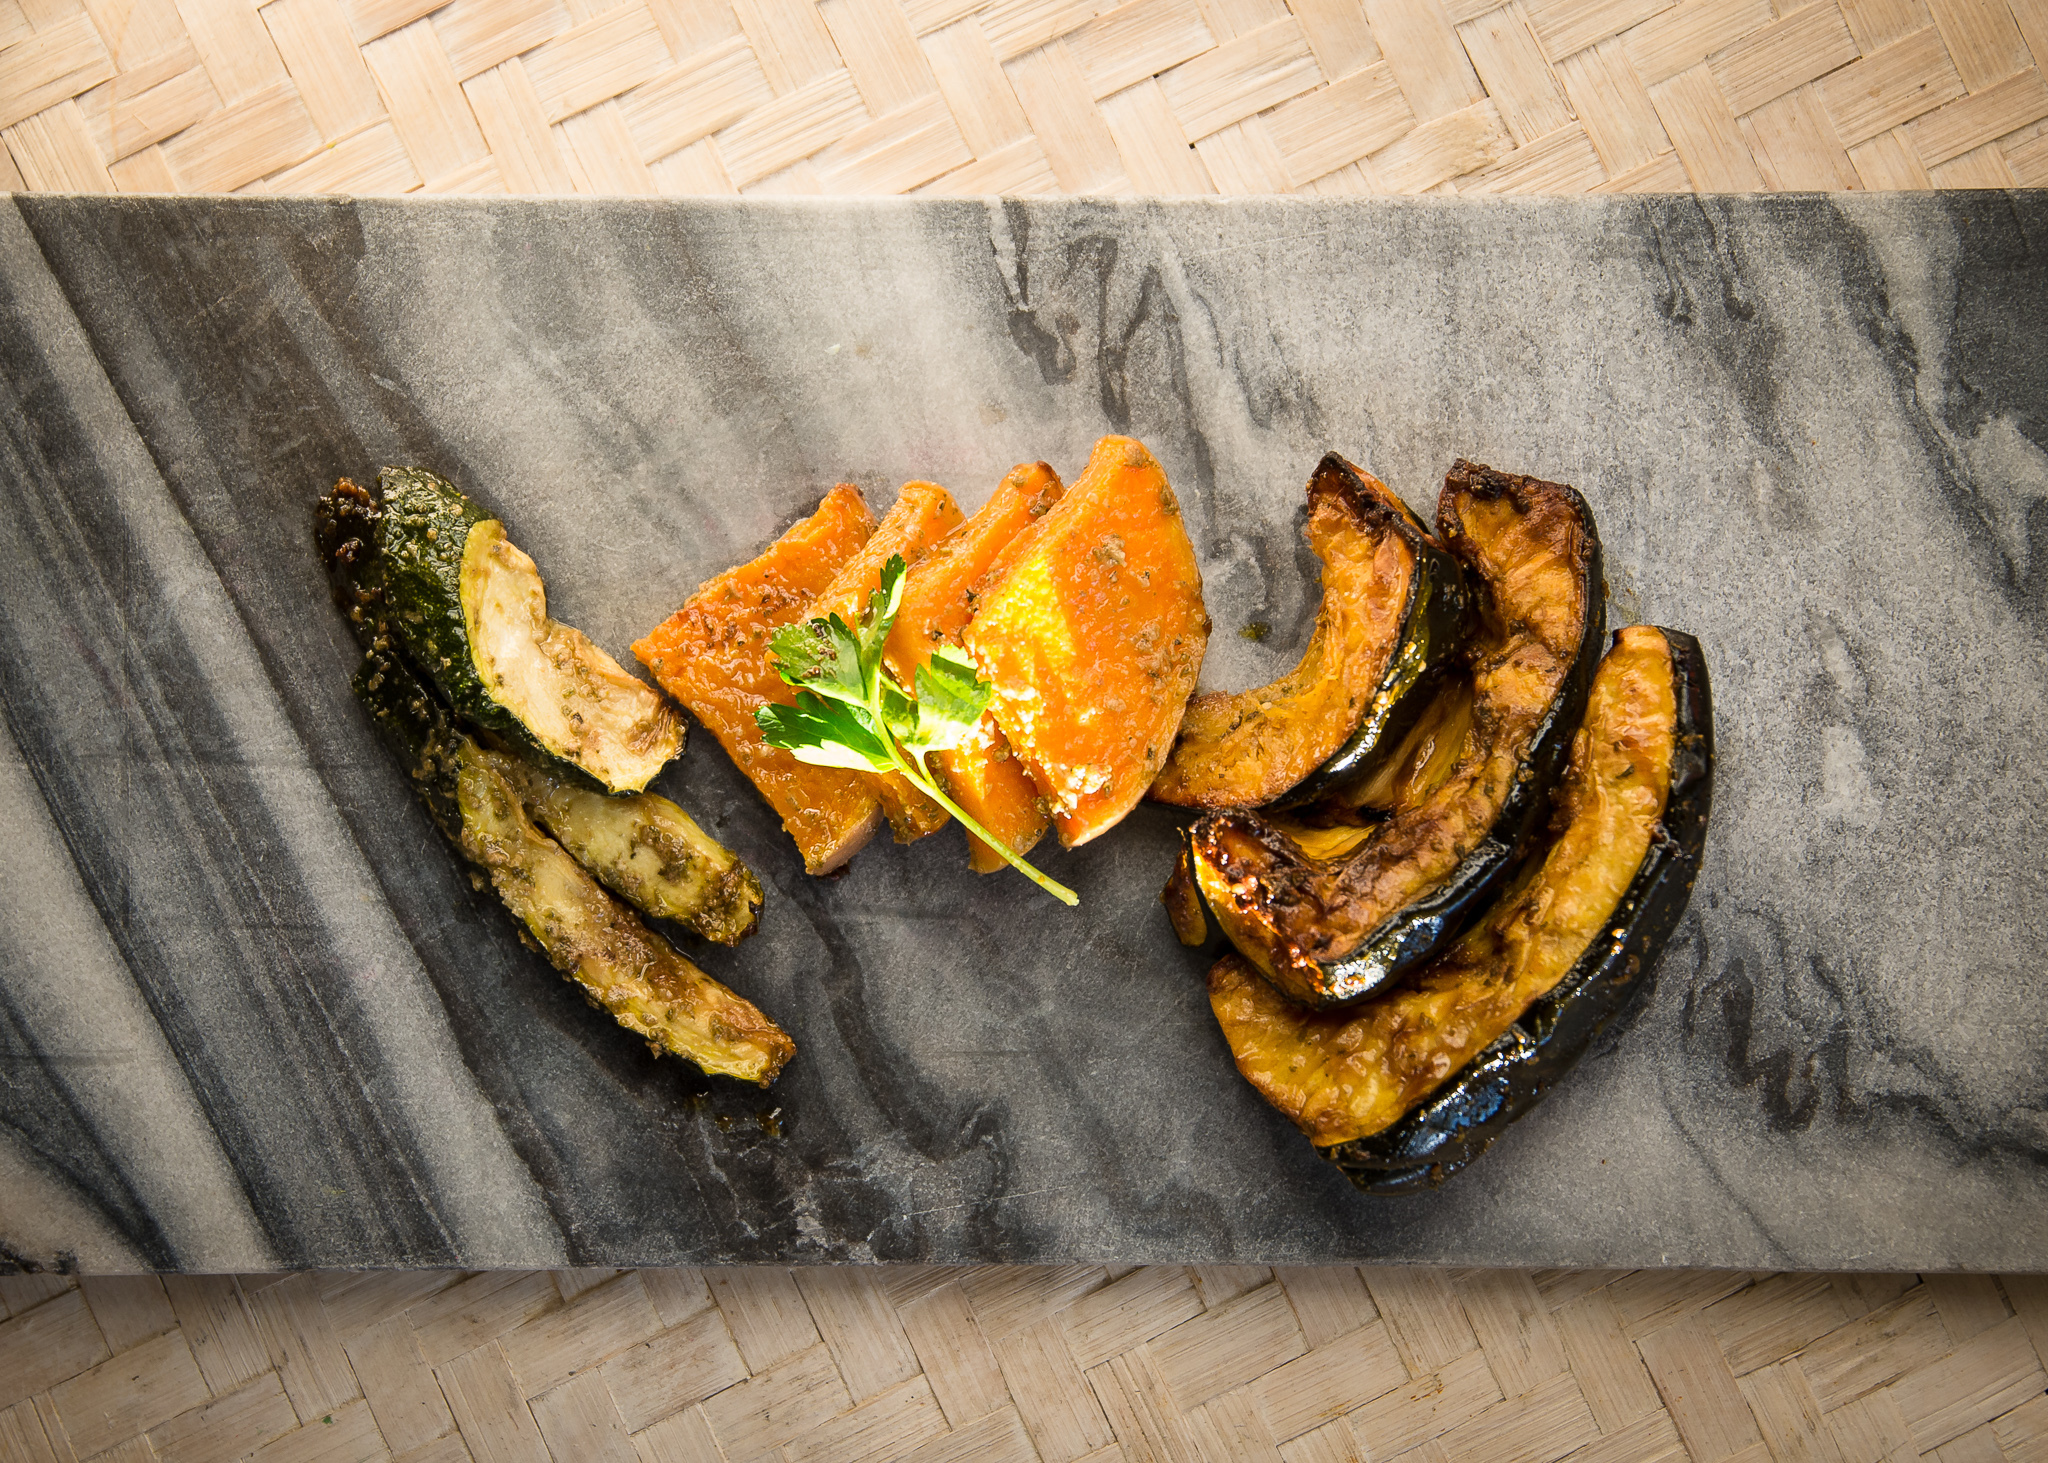 Honest Plate roasted squash and sweet potato.